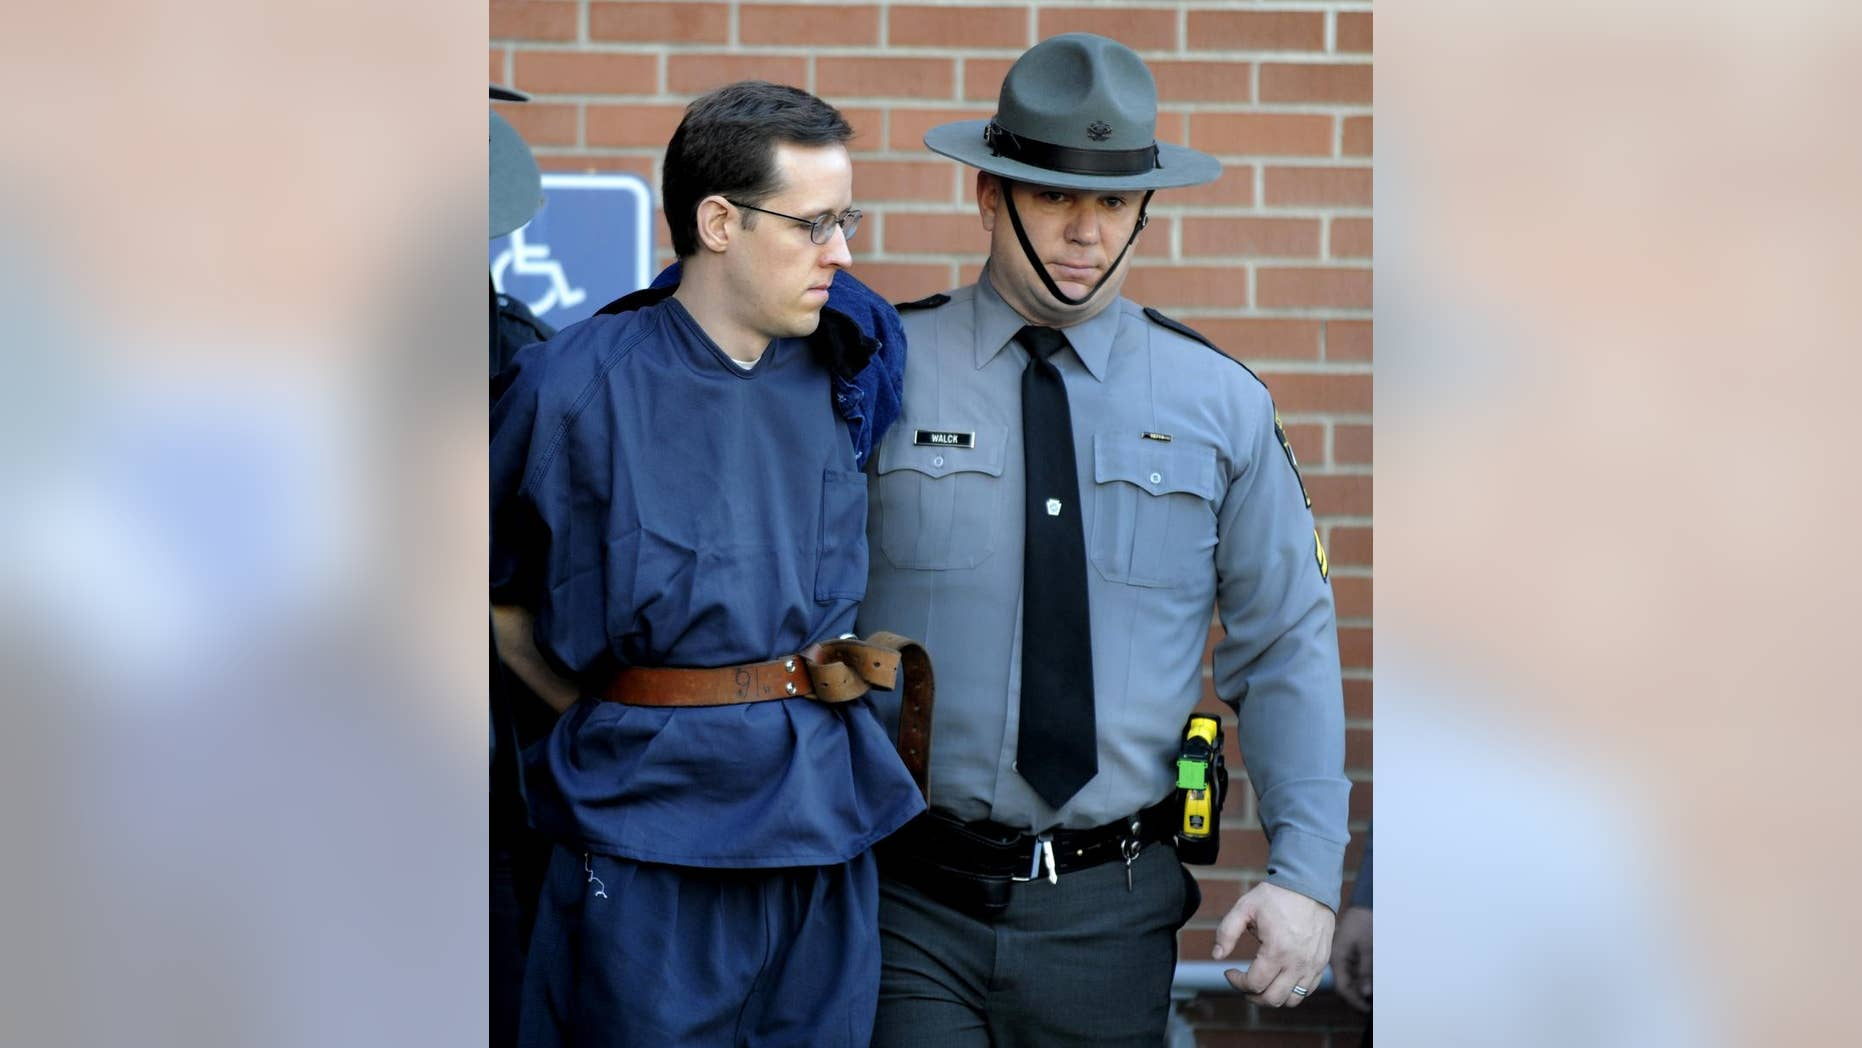 FILE- In this Jan. 5, 2015, file photo, Eric Frein, left, is led from the Pike County Courthouse after his preliminary hearing in Milford, Pa. Frein is charged with fatally shooting a Pennsylvania state trooper and wounded another during an ambush at their barracks in September. A formal arraignment for Frein is scheduled for Thursday, Jan. 29, 2015, at the courthouse in Milford. (AP Photo/David Kidwell, File)